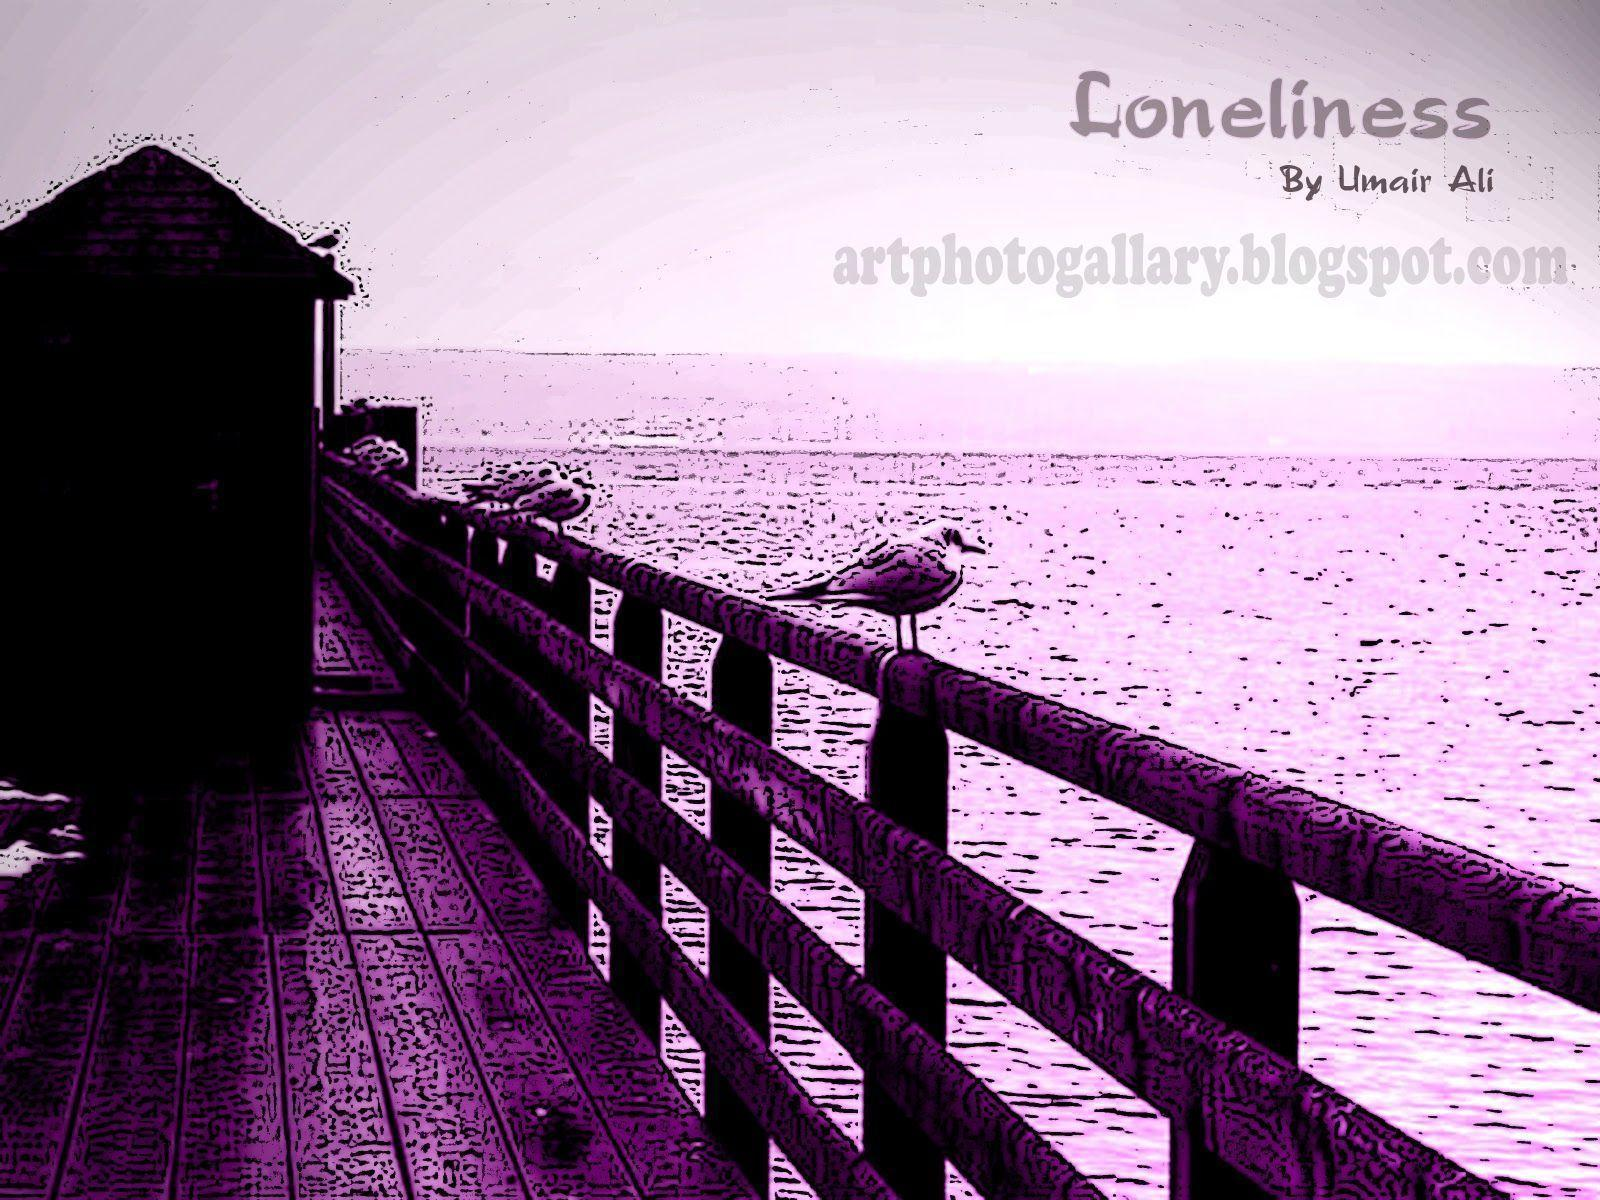 Lonely Wallpapers (64+ images) |Loneliness Wallpapers With Quotes